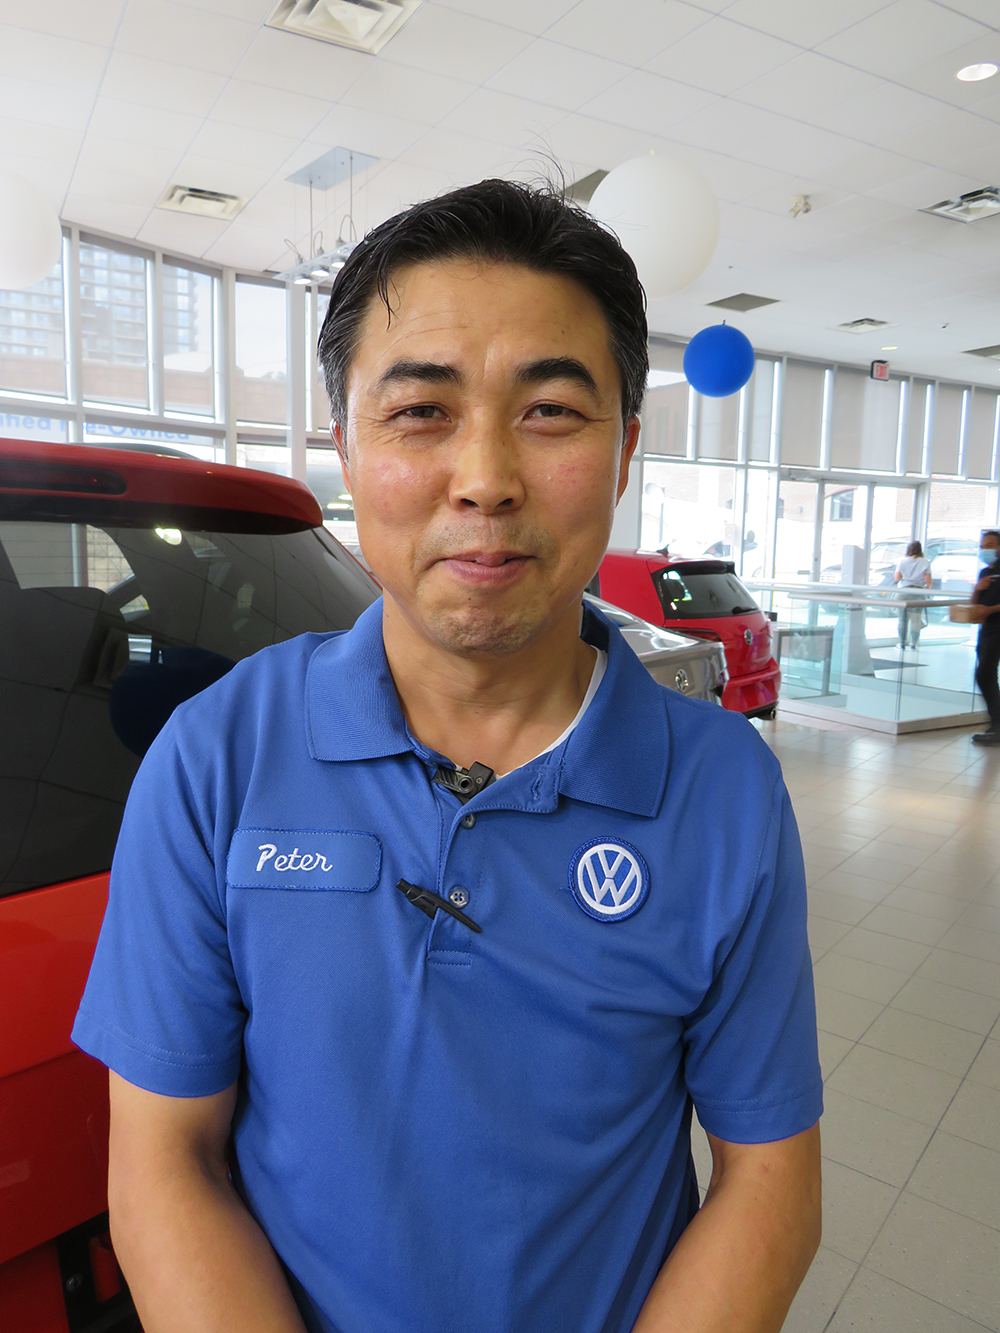 Peter Cho - Service Lot Supervisor